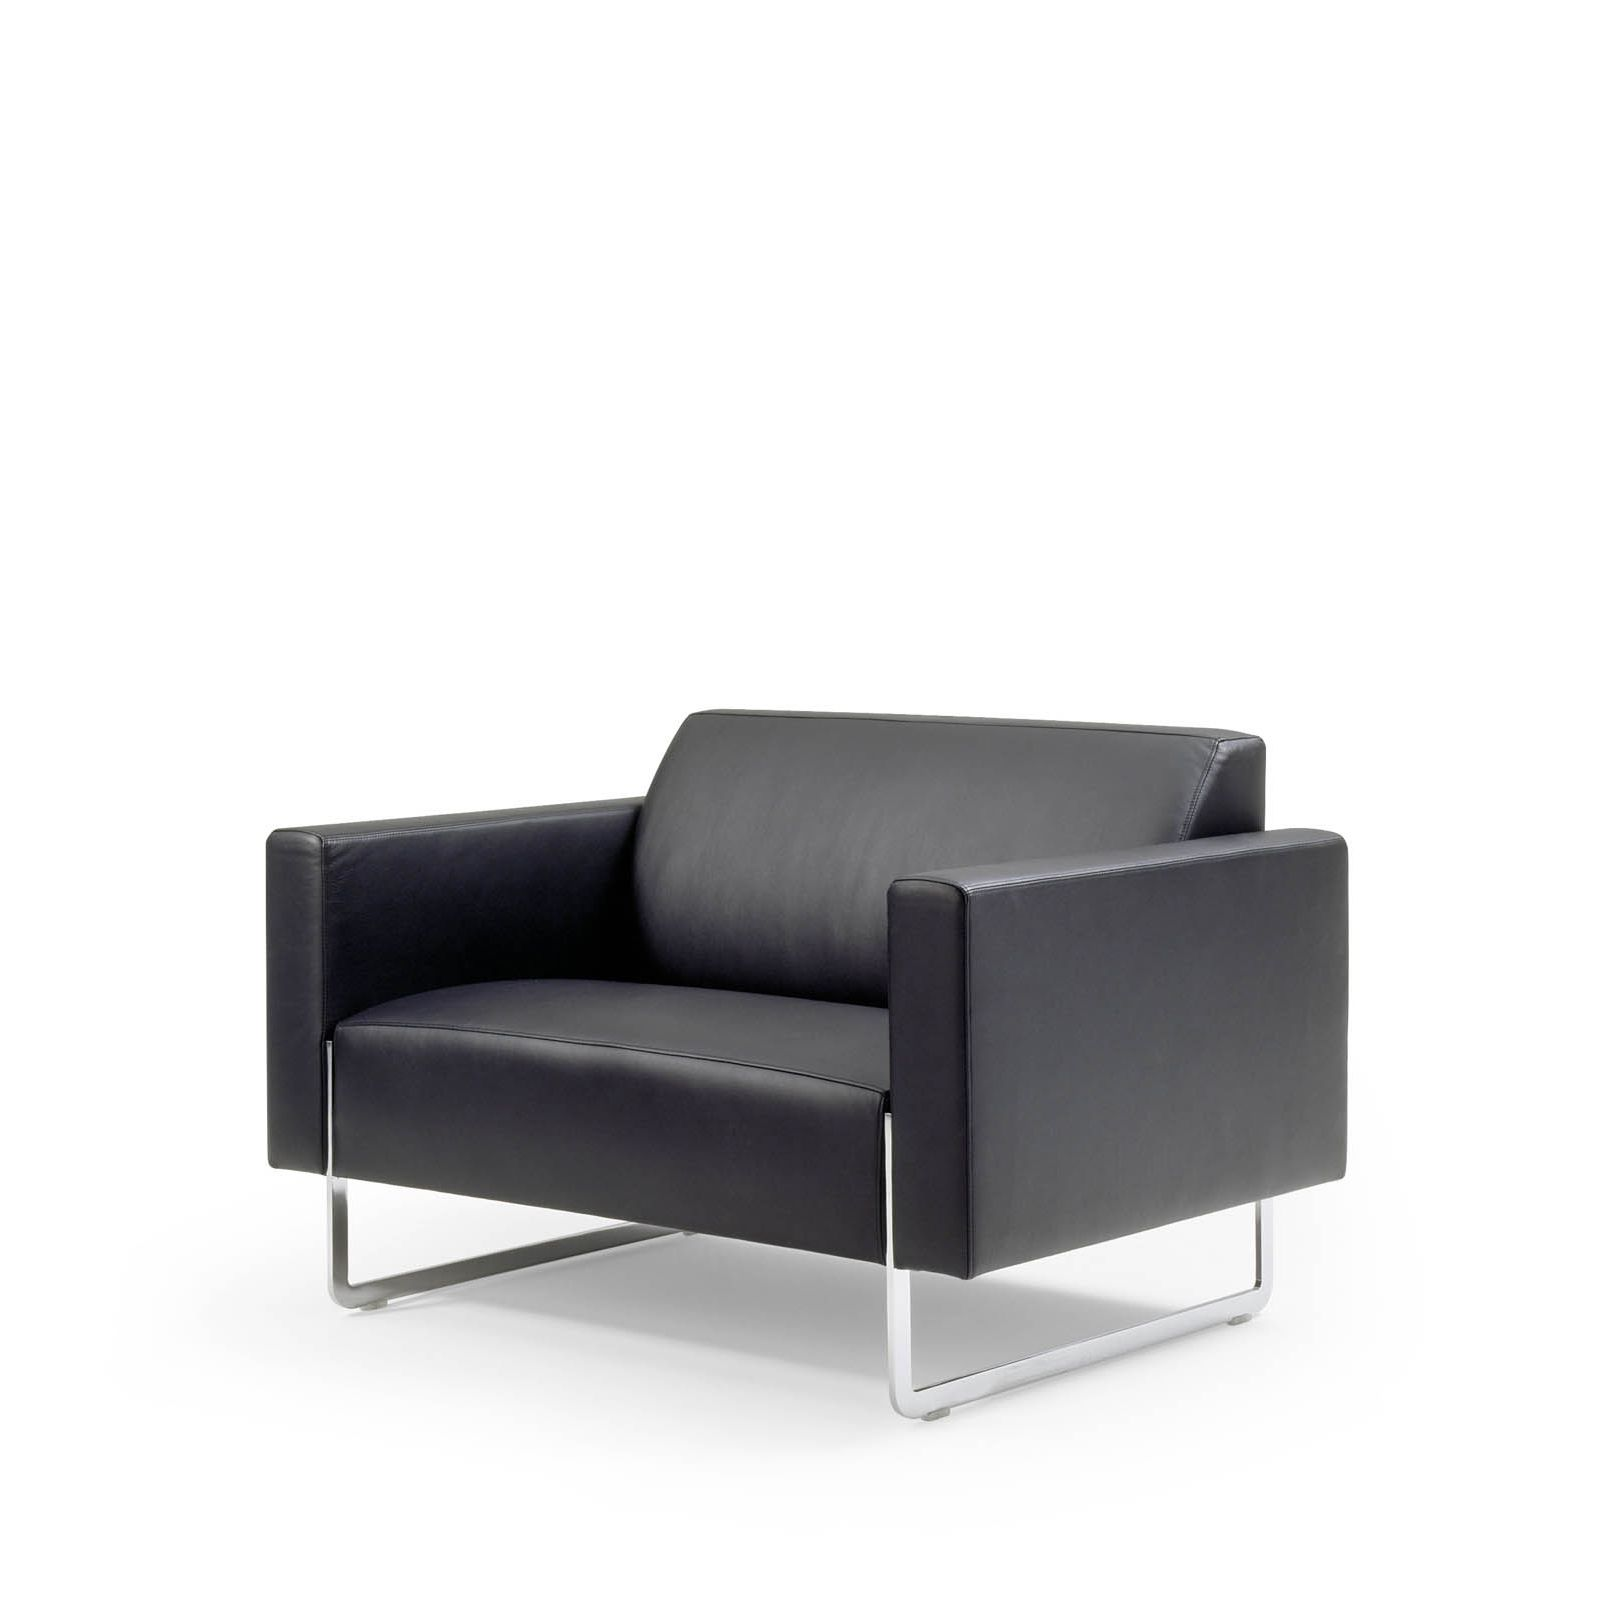 MARE LOUNGE CHAIR